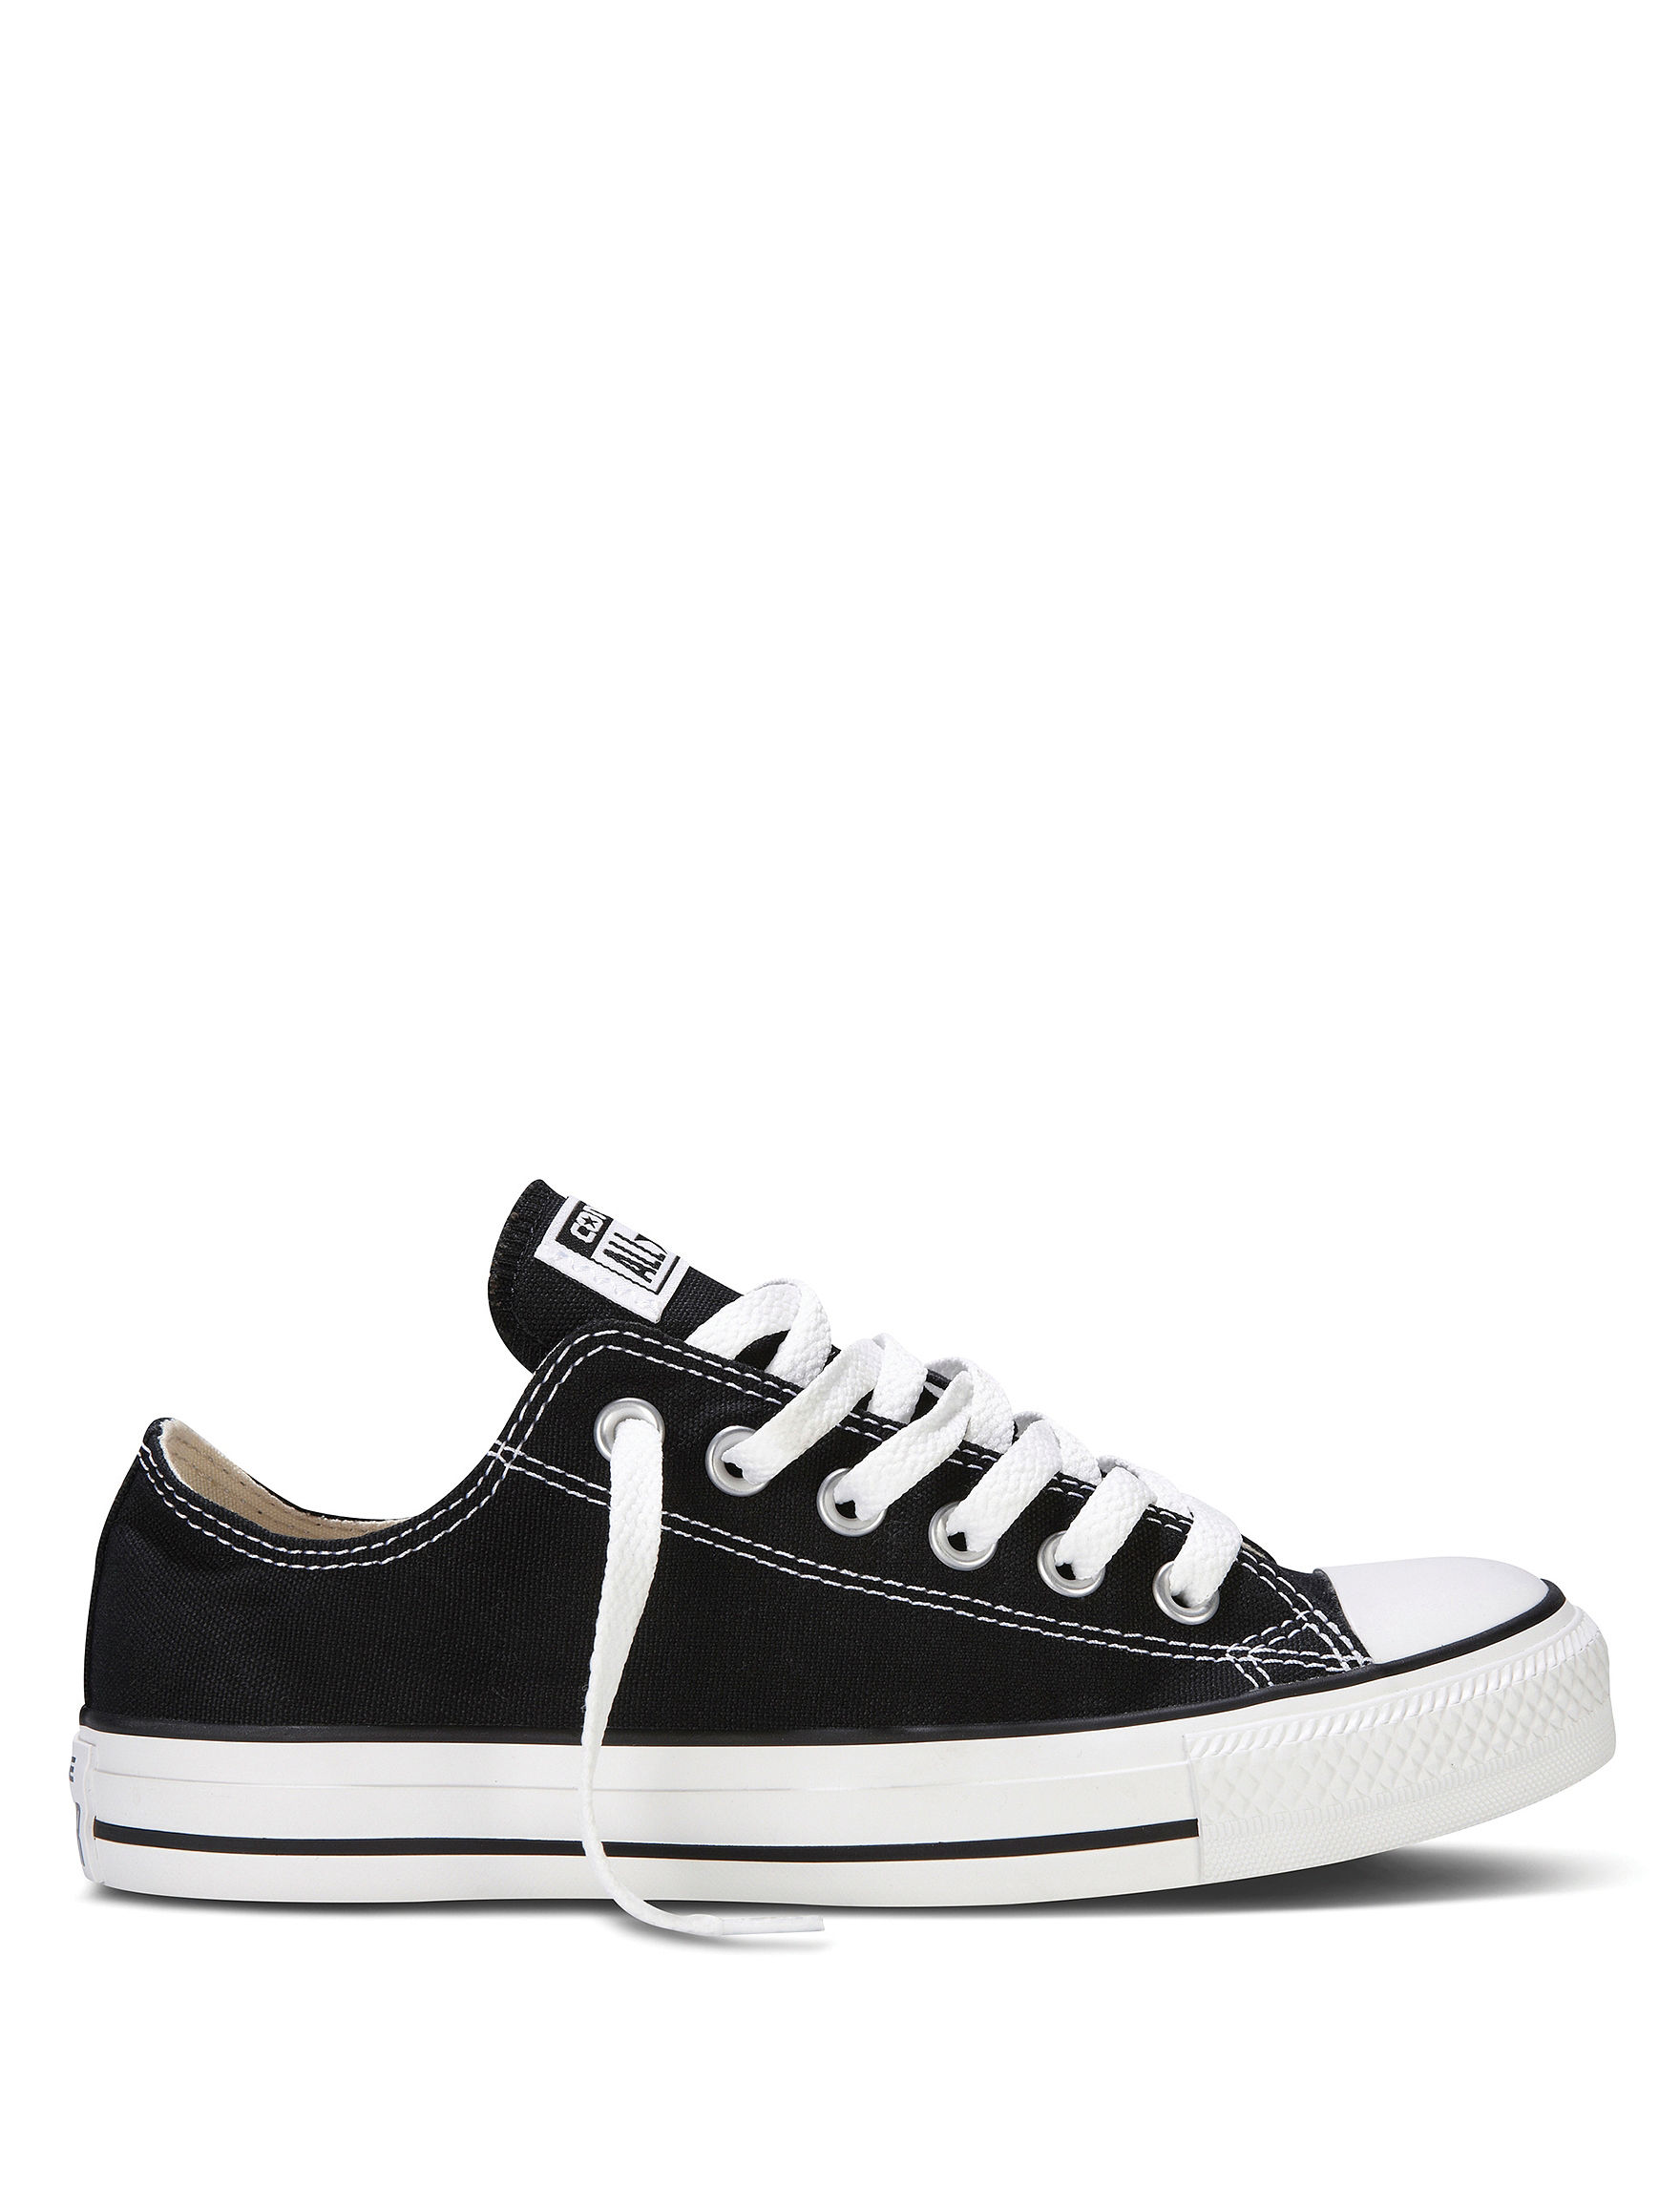 7c53569c423309 Converse® Chuck Taylor All Star Oxford Shoes – Ladies